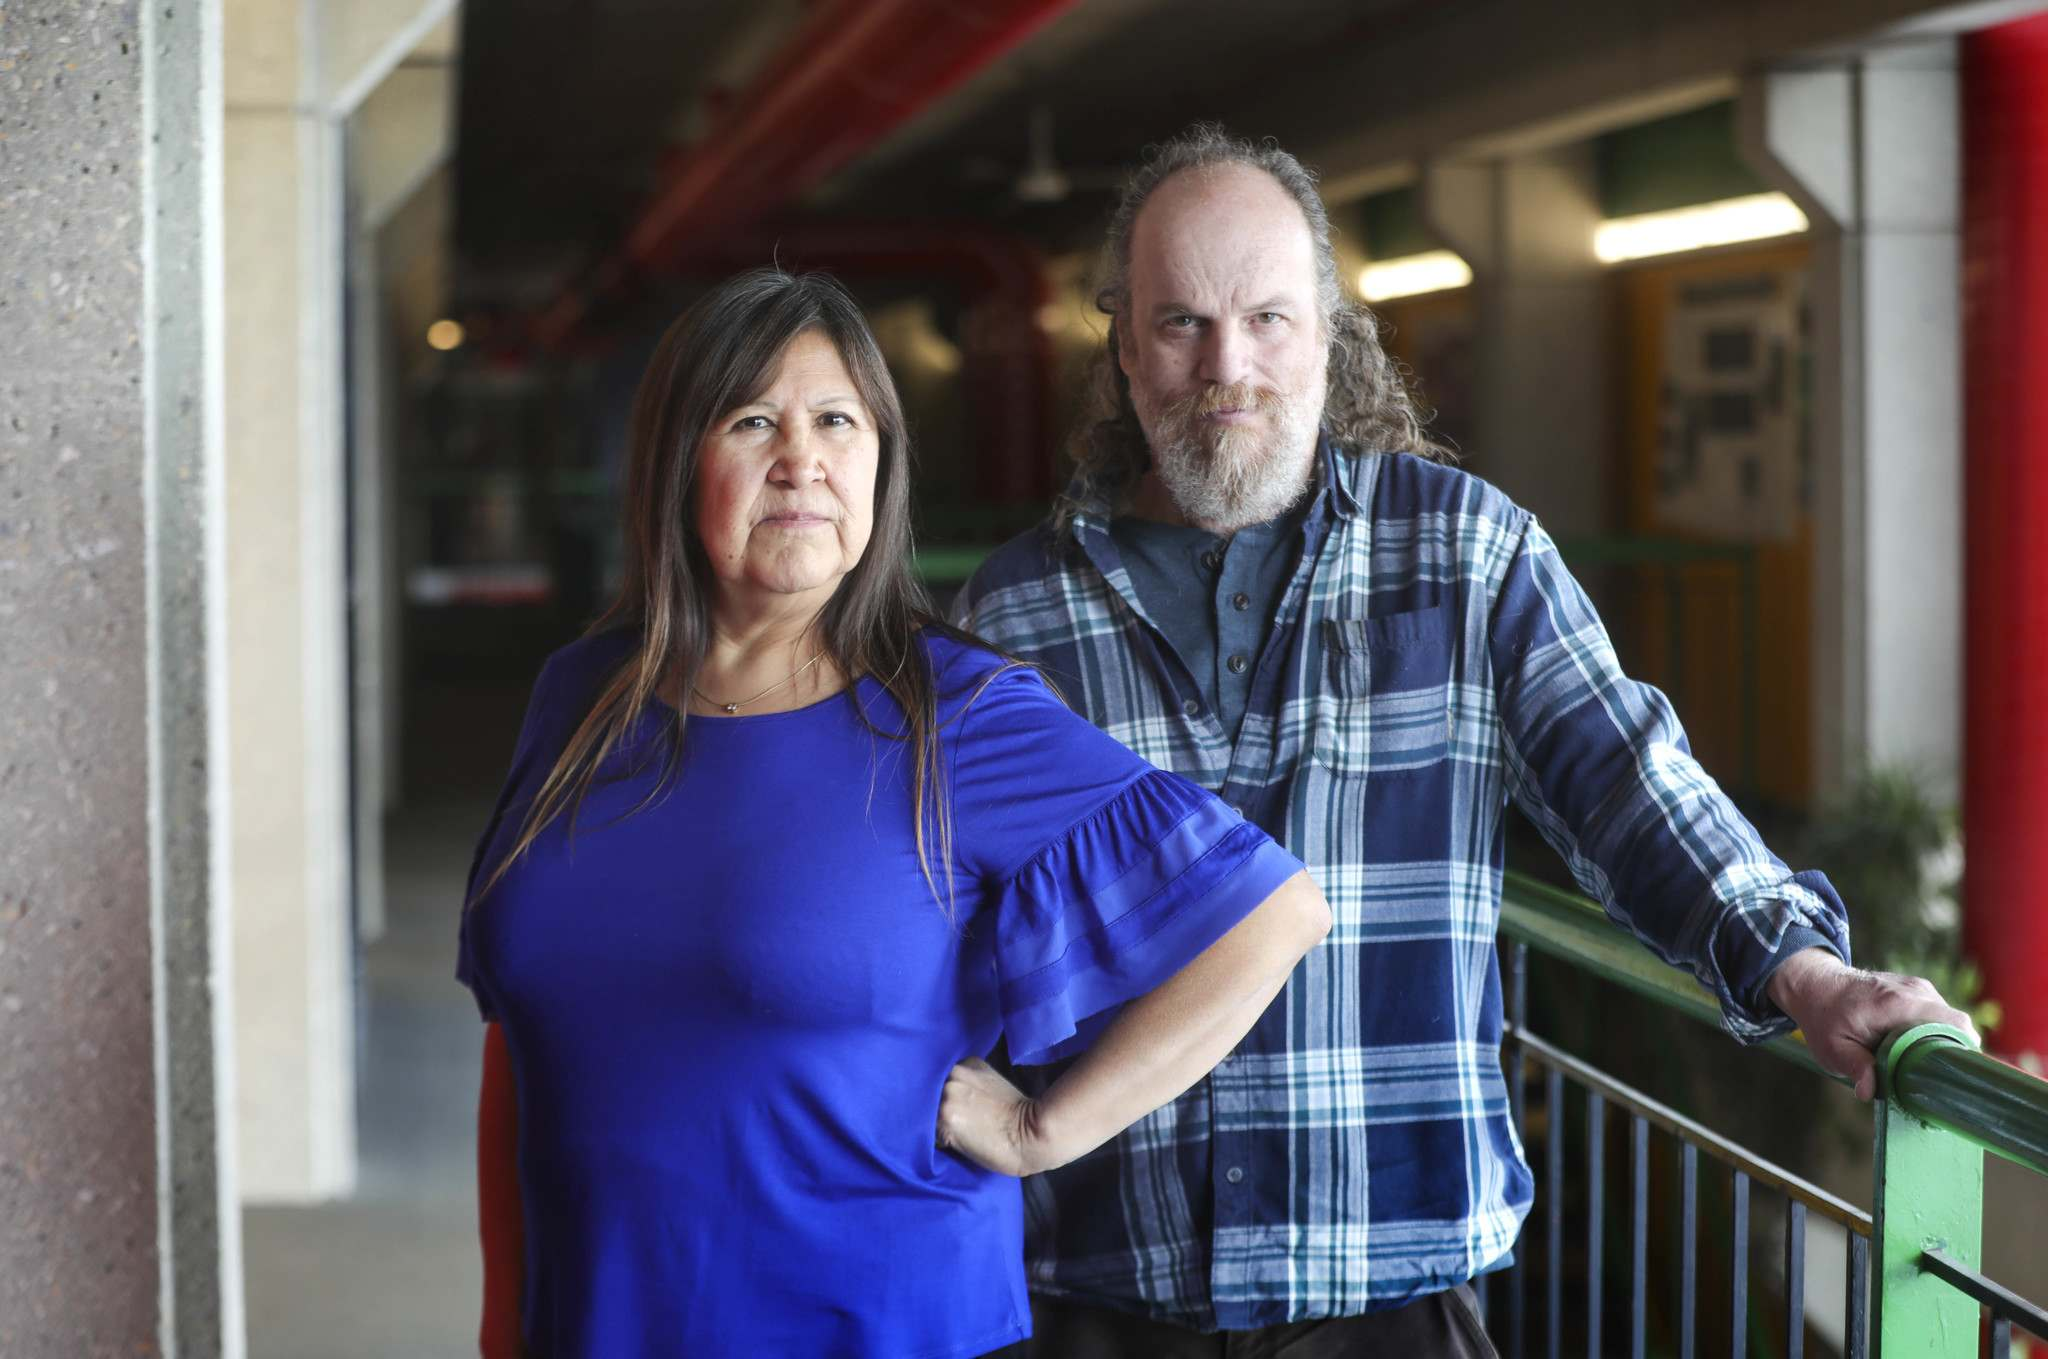 RUTH BONNEVILLE / WINNIPEG FREE PRESS</p><p>Researchers Dr. Myrle Ballard (left) Dr. Stephane McLaclan are researching infectious diseases on Indigenous communities, looking at the coronavirus threat and what lessons Manitoba has learned since the H1N1 swine flu spread in the province's north a decade ago. </p>